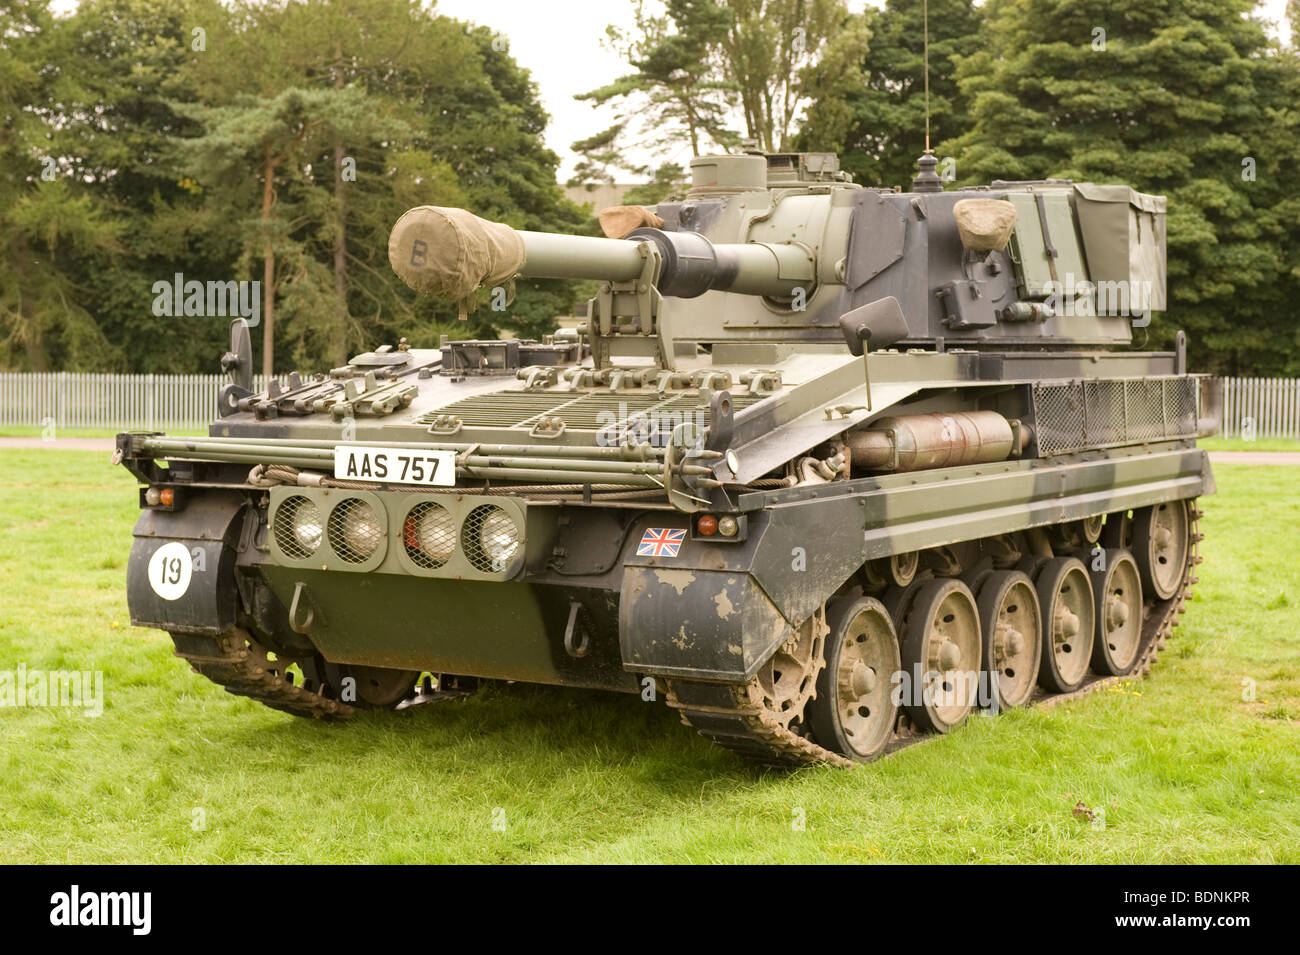 An Abbot 105mm Self propelled Gun used by British Forces - Stock Image